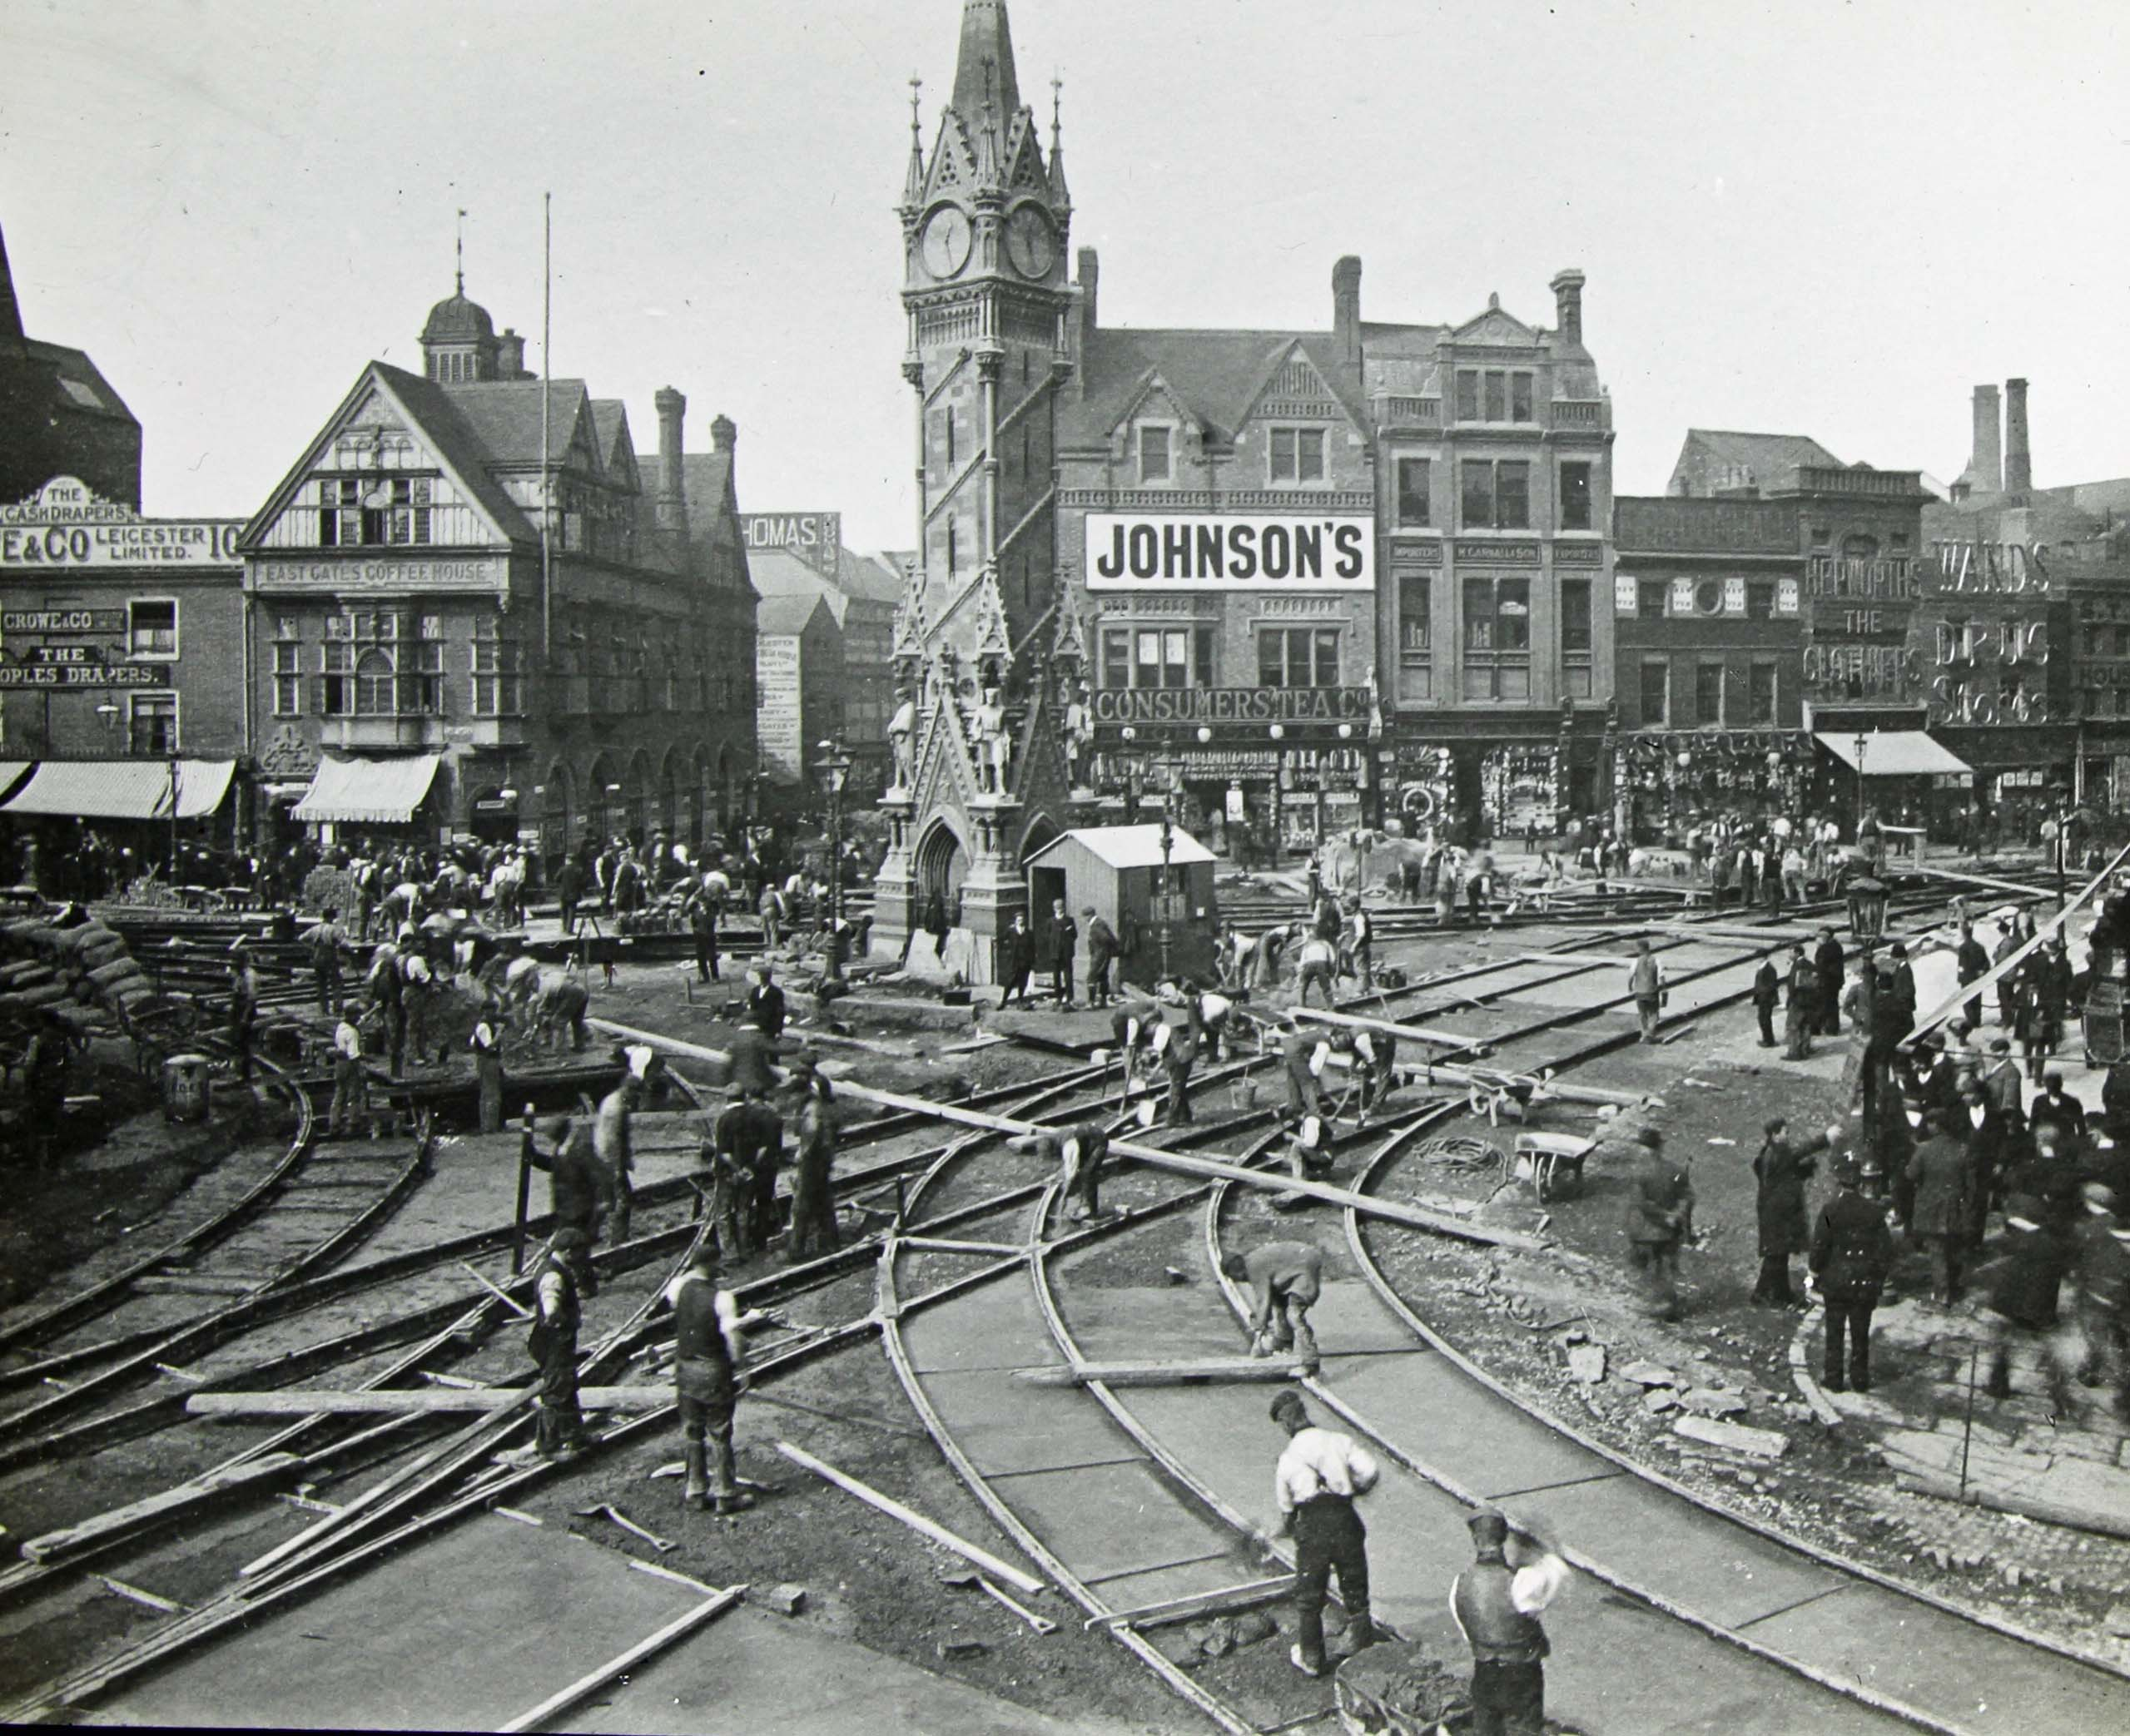 Laying tram tracks, 1903 - Leicestershire Record Office